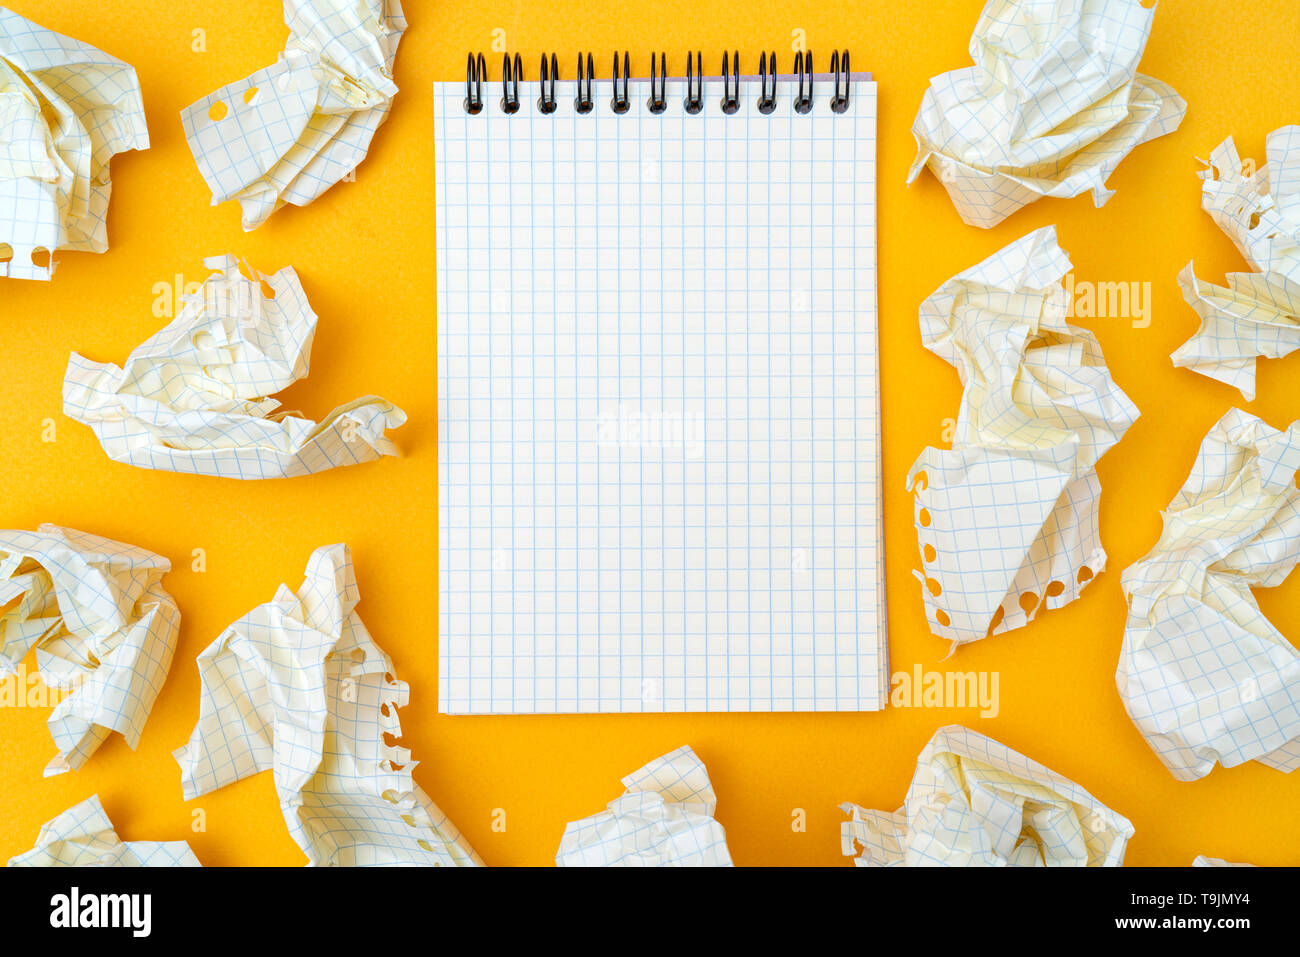 Notepad and crumpled sheets of paper on a yellow background. - Stock Image